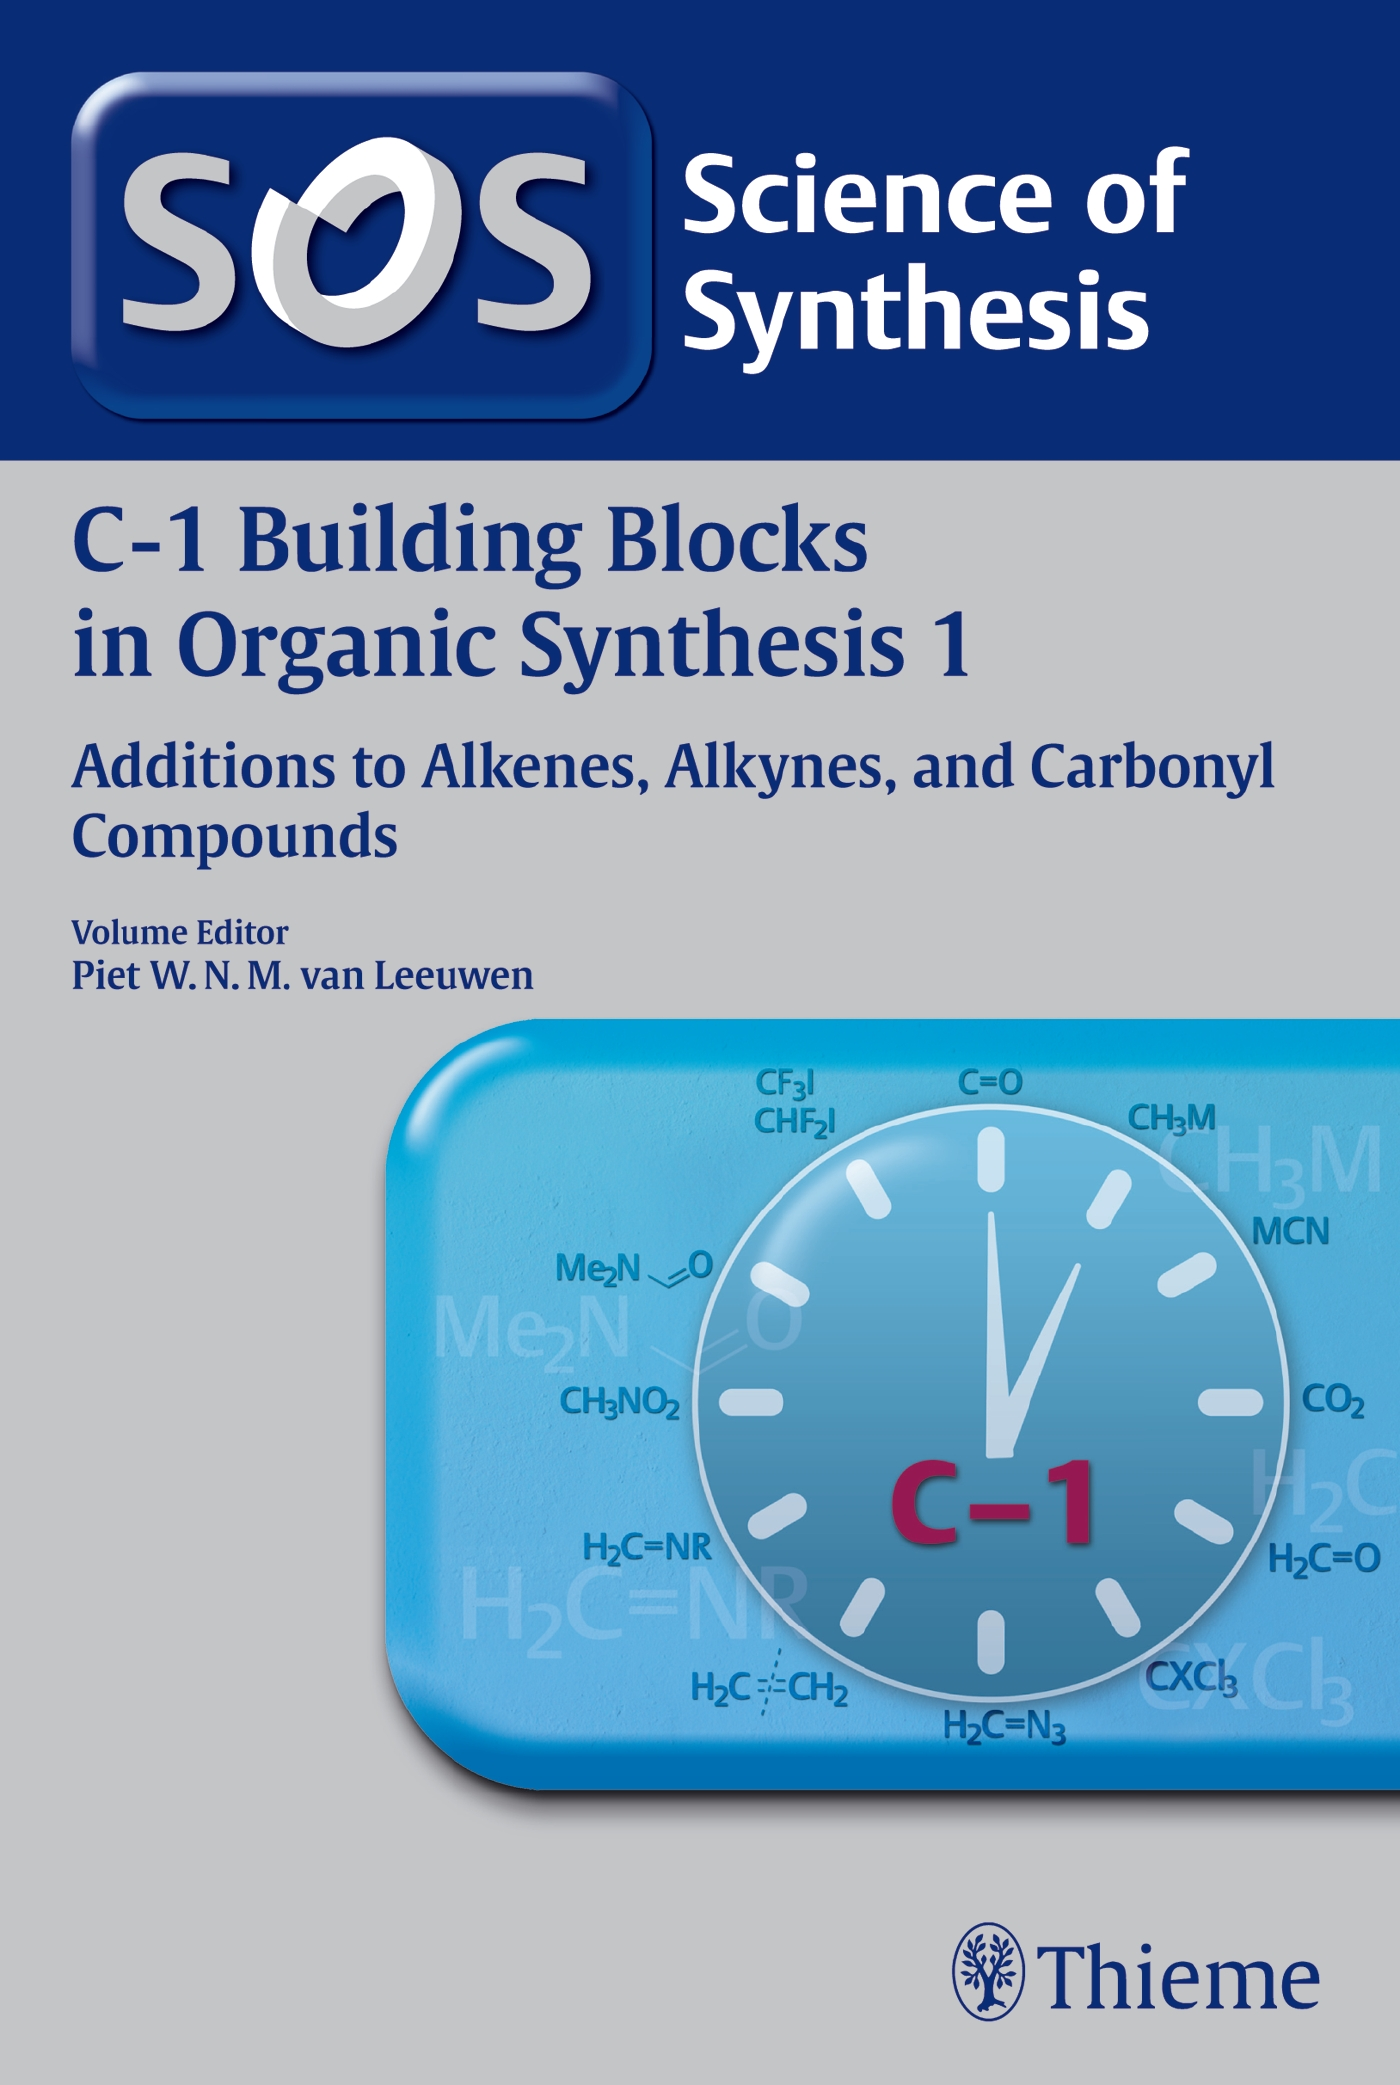 Science of Synthesis: C-1 Building Blocks in Organic Synthesis Vol. 1